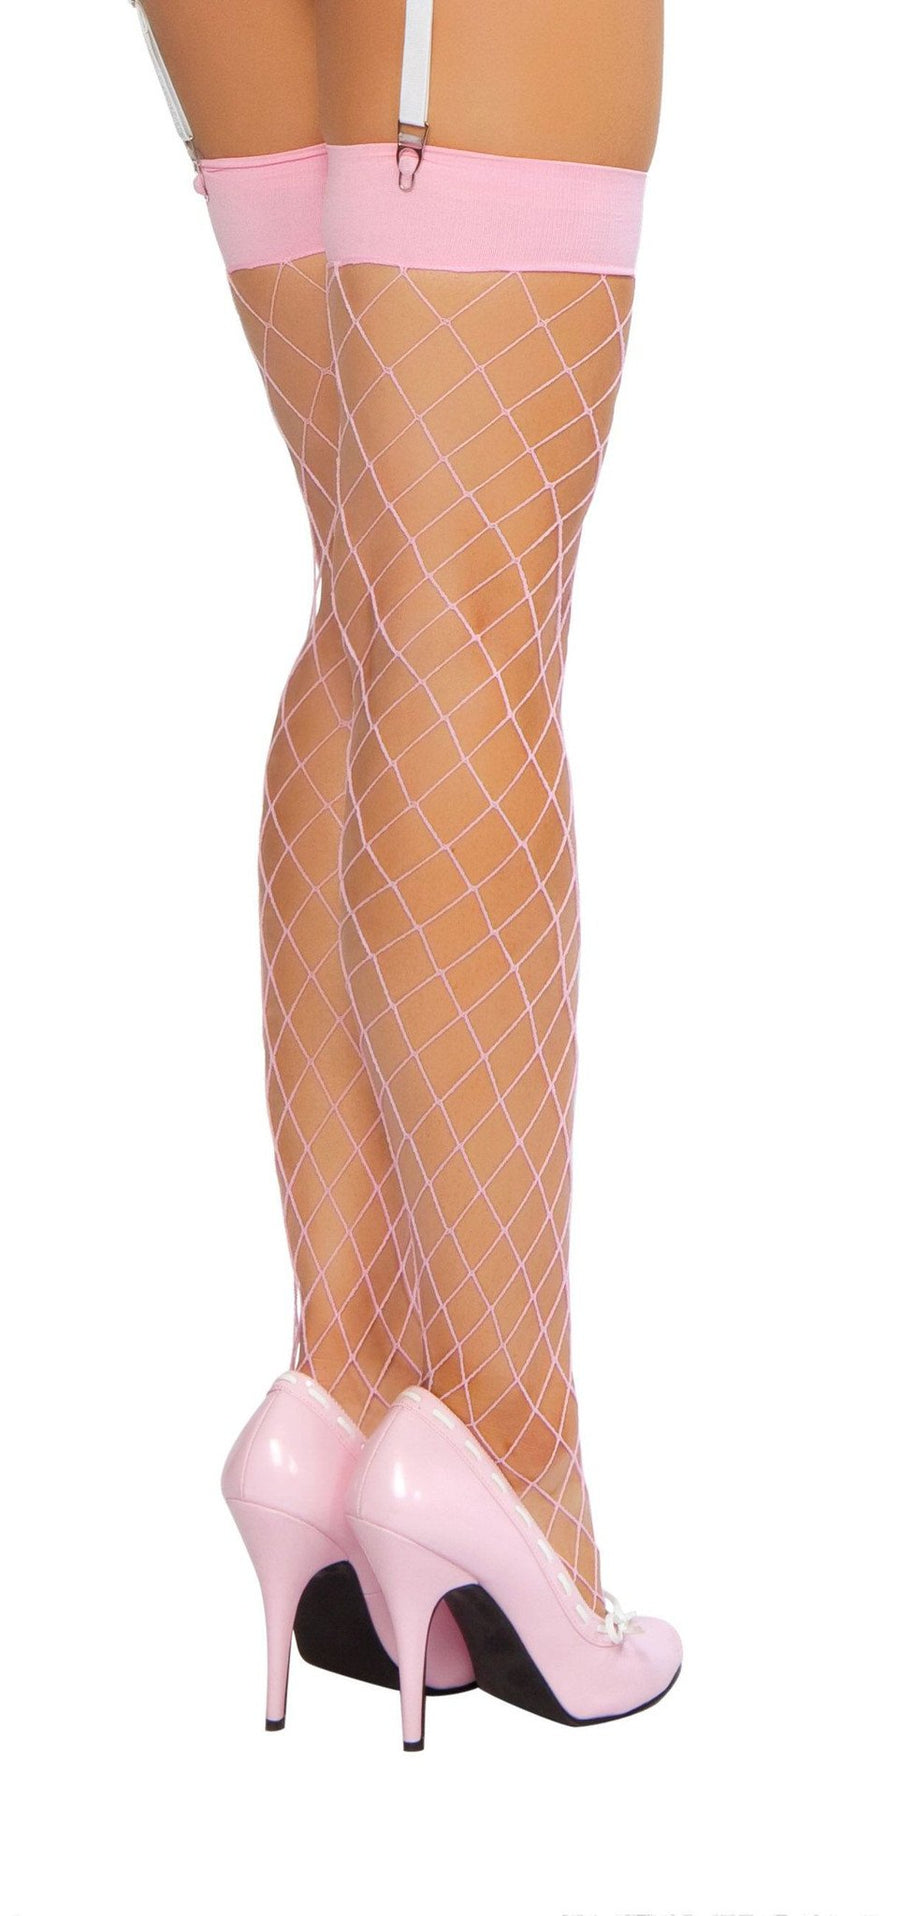 Thigh High Open Fishnet Stocking - Intimates, Roma - YourLamode